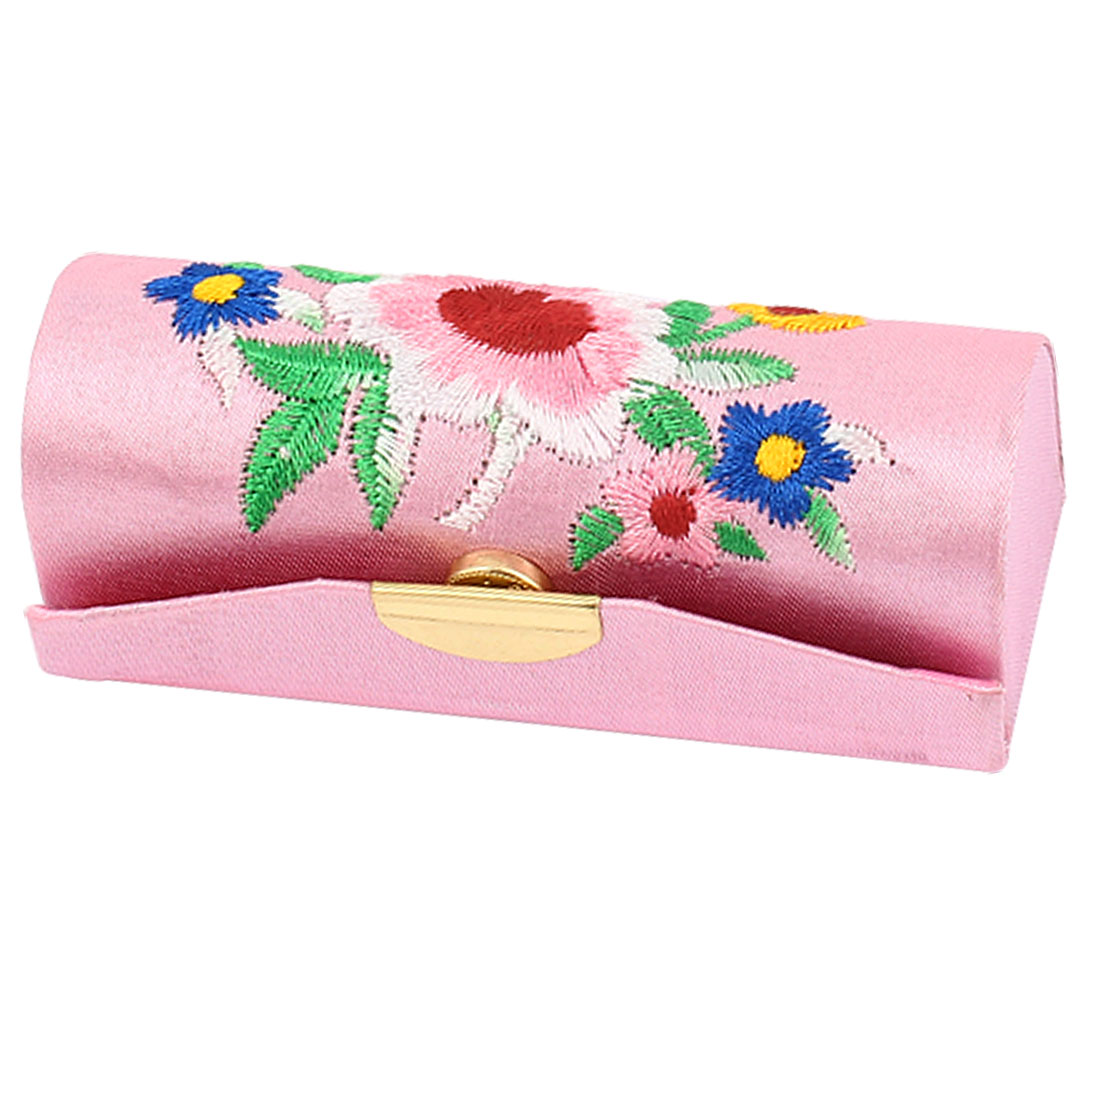 Lady Floral Embroidery Press Stud Closure Lipstick Lip Balm Chap Stick Case Box Holder Pink